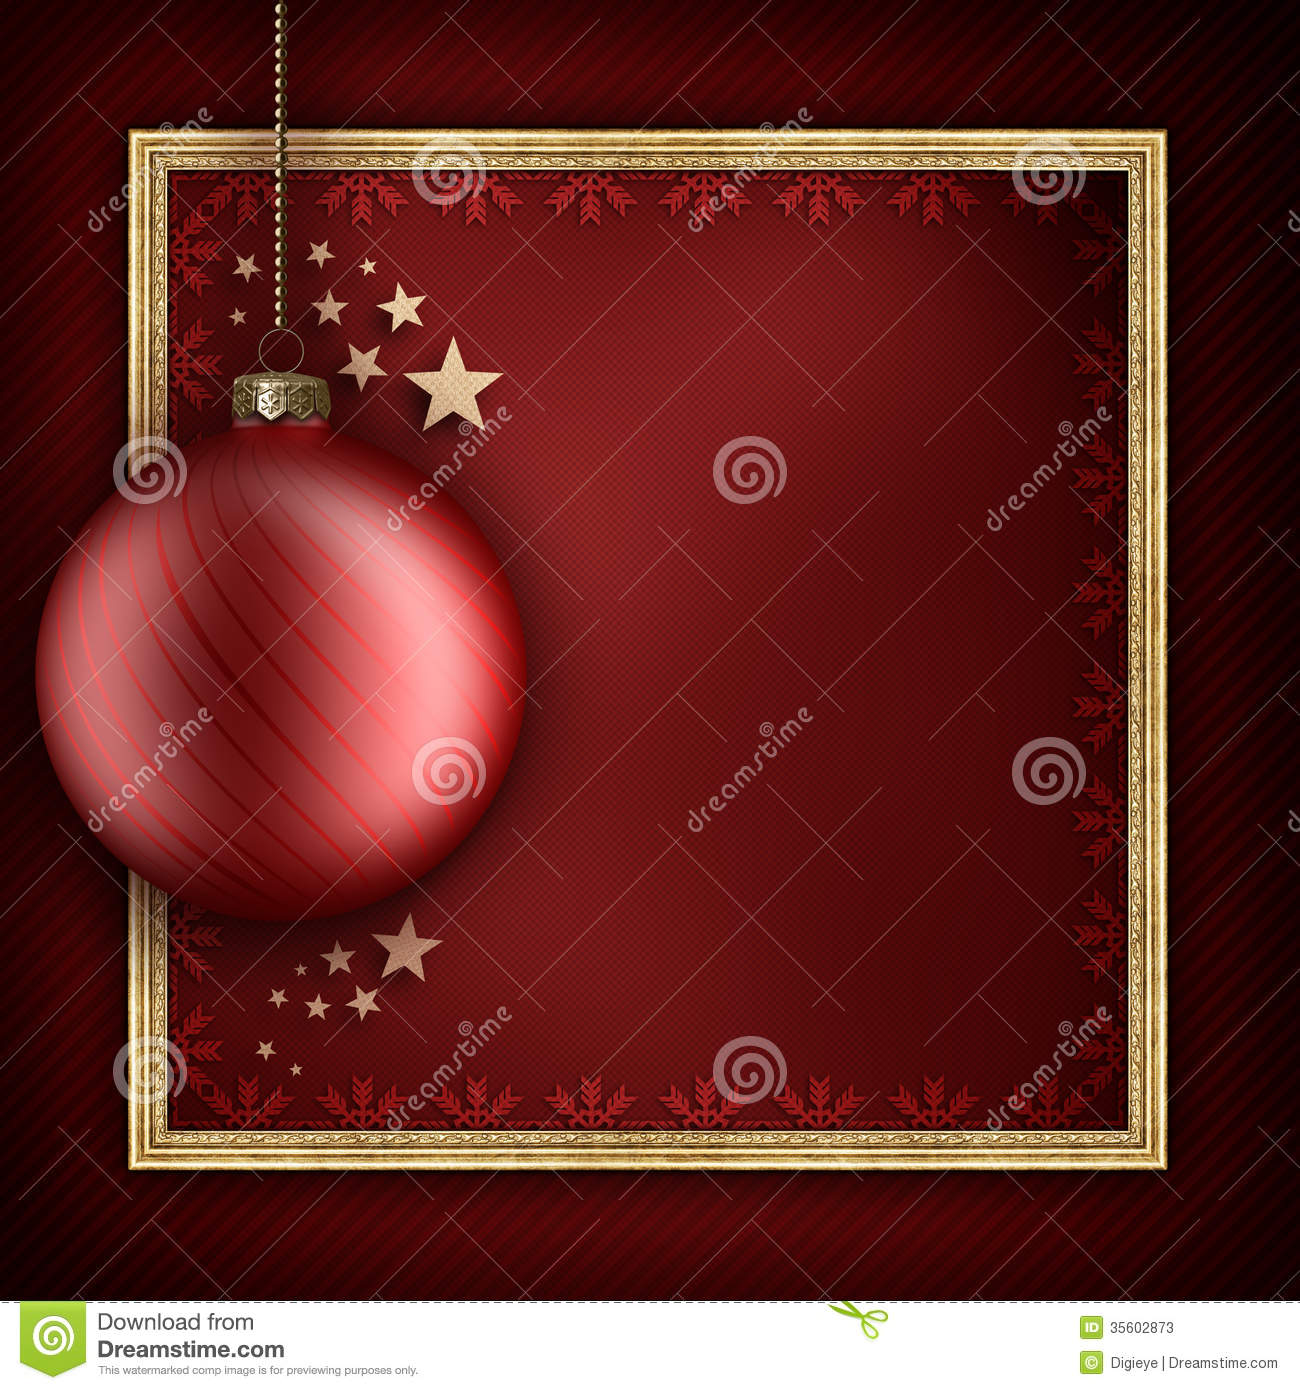 Christmas card template - red xmas bauble, stars and picture frame.